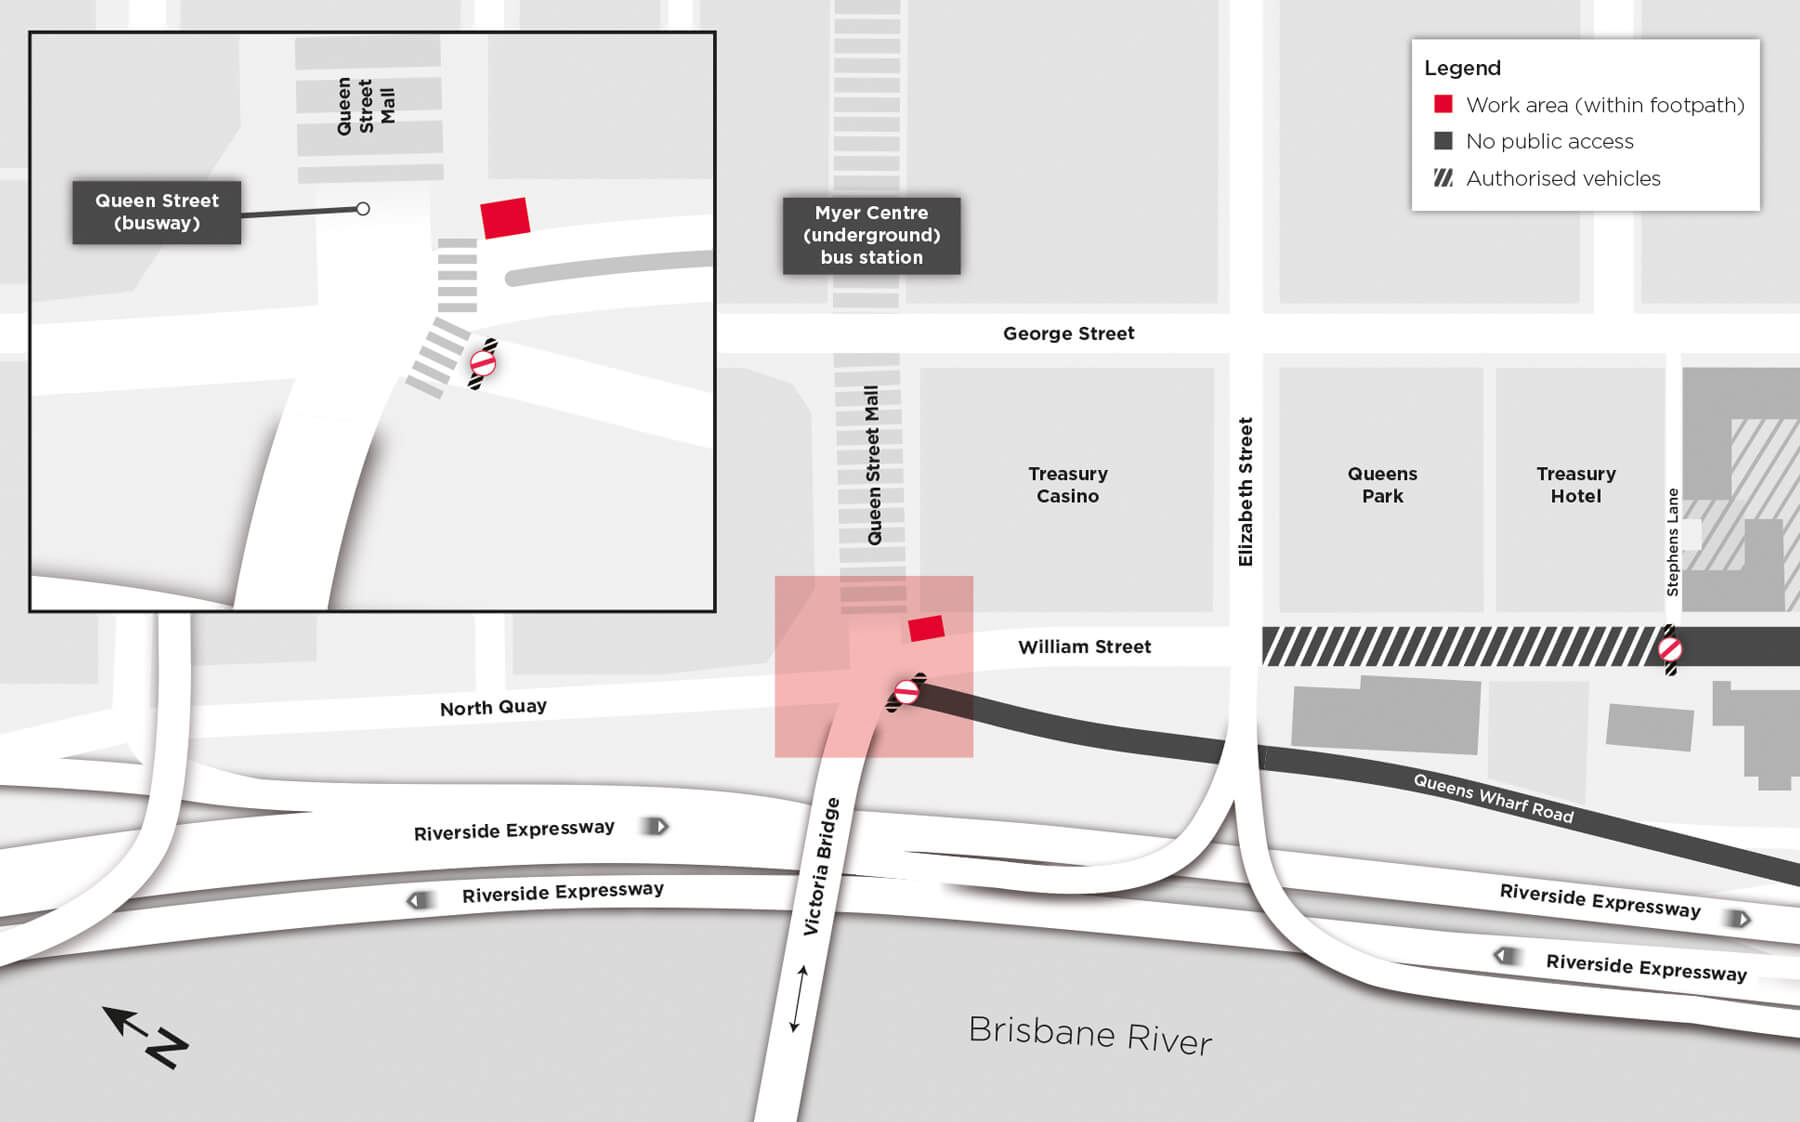 170707 - Construction Update - Water main connection cnr QueenSt - Rev B